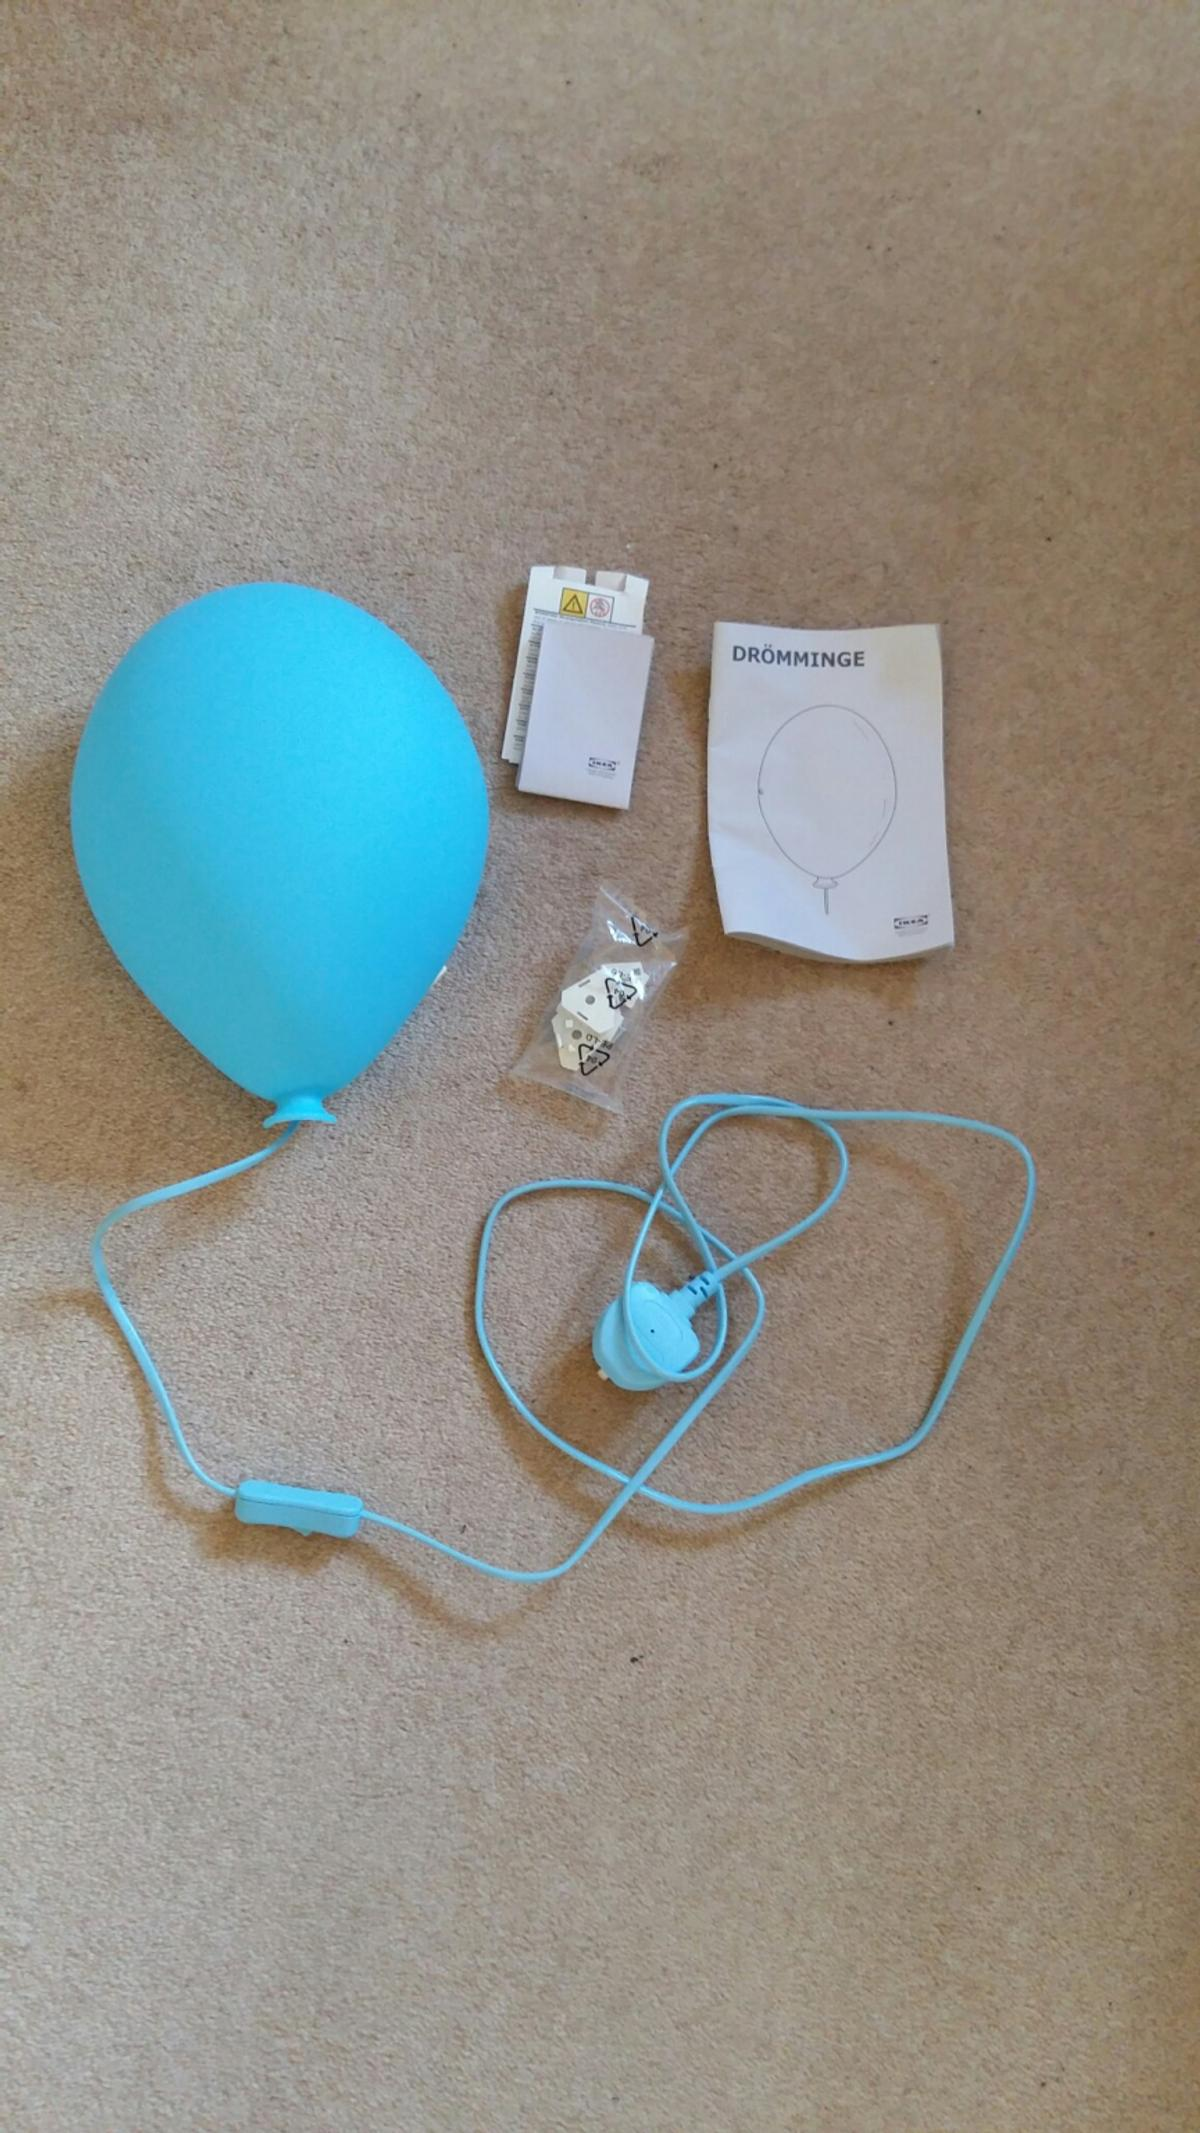 Ikea Dromminge Wall Lamp Blue In S60 Rotherham For 3 00 For Sale Shpock